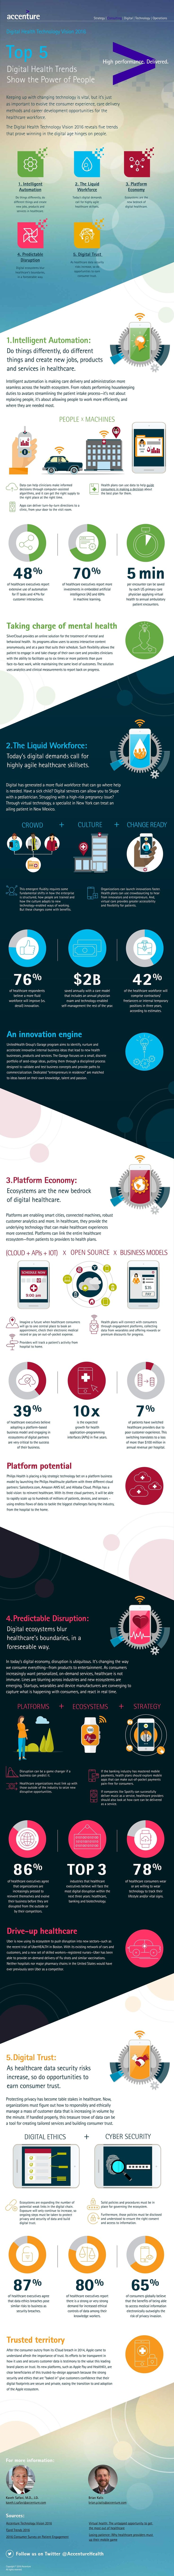 Top 5 Digital Health Trends Show the Power of People